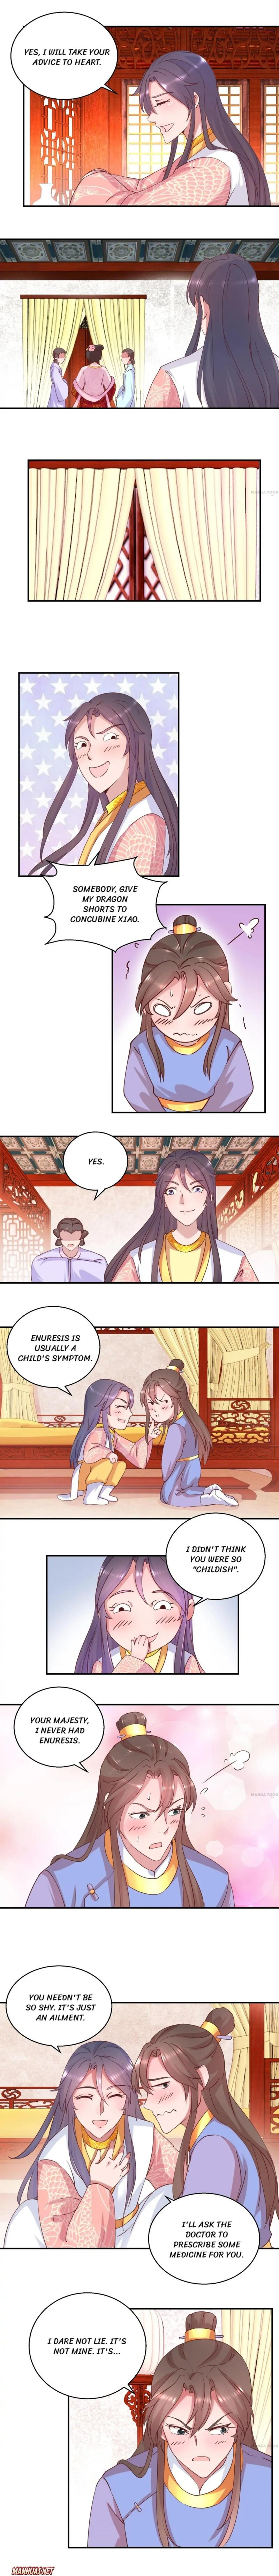 Prime Minister Is My Concubine - chapter 29 - #1